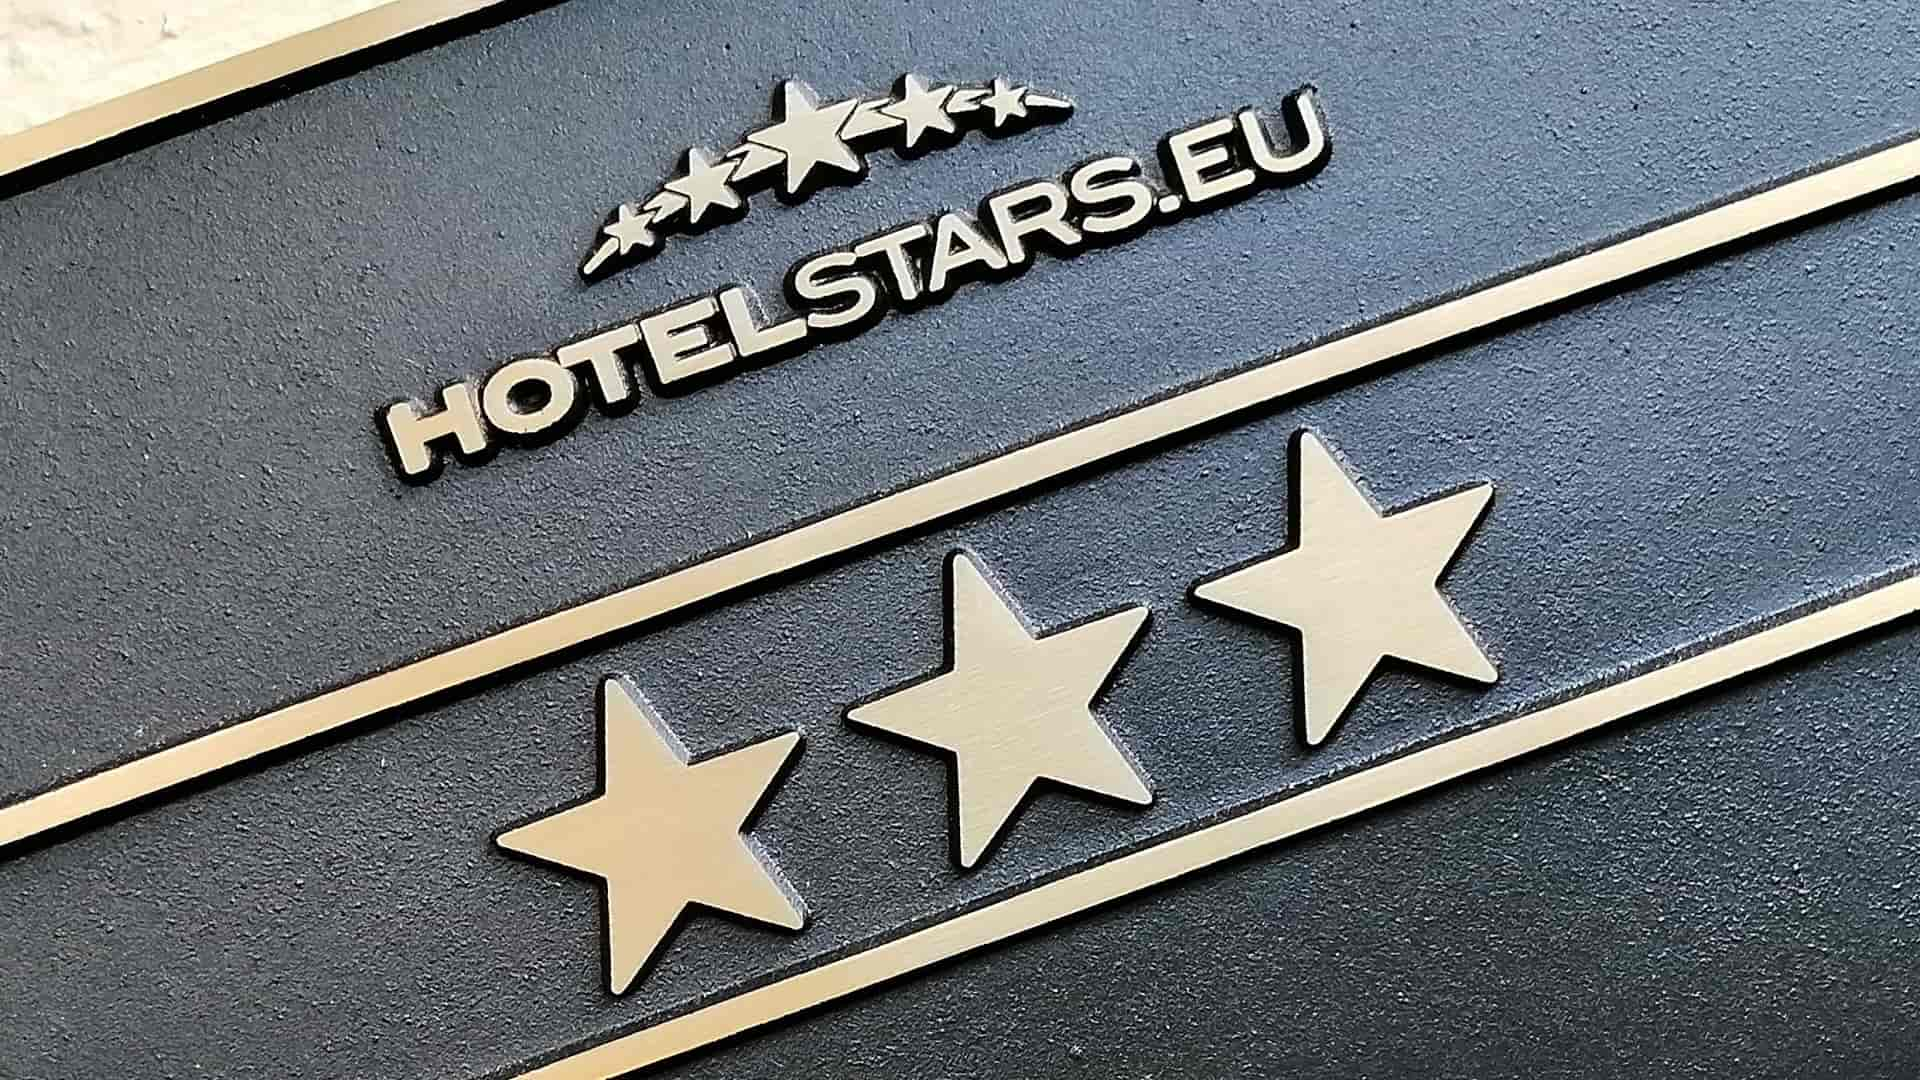 The St. Joseph Hotel Hamburg constantly meets the requirements for the three-star standard